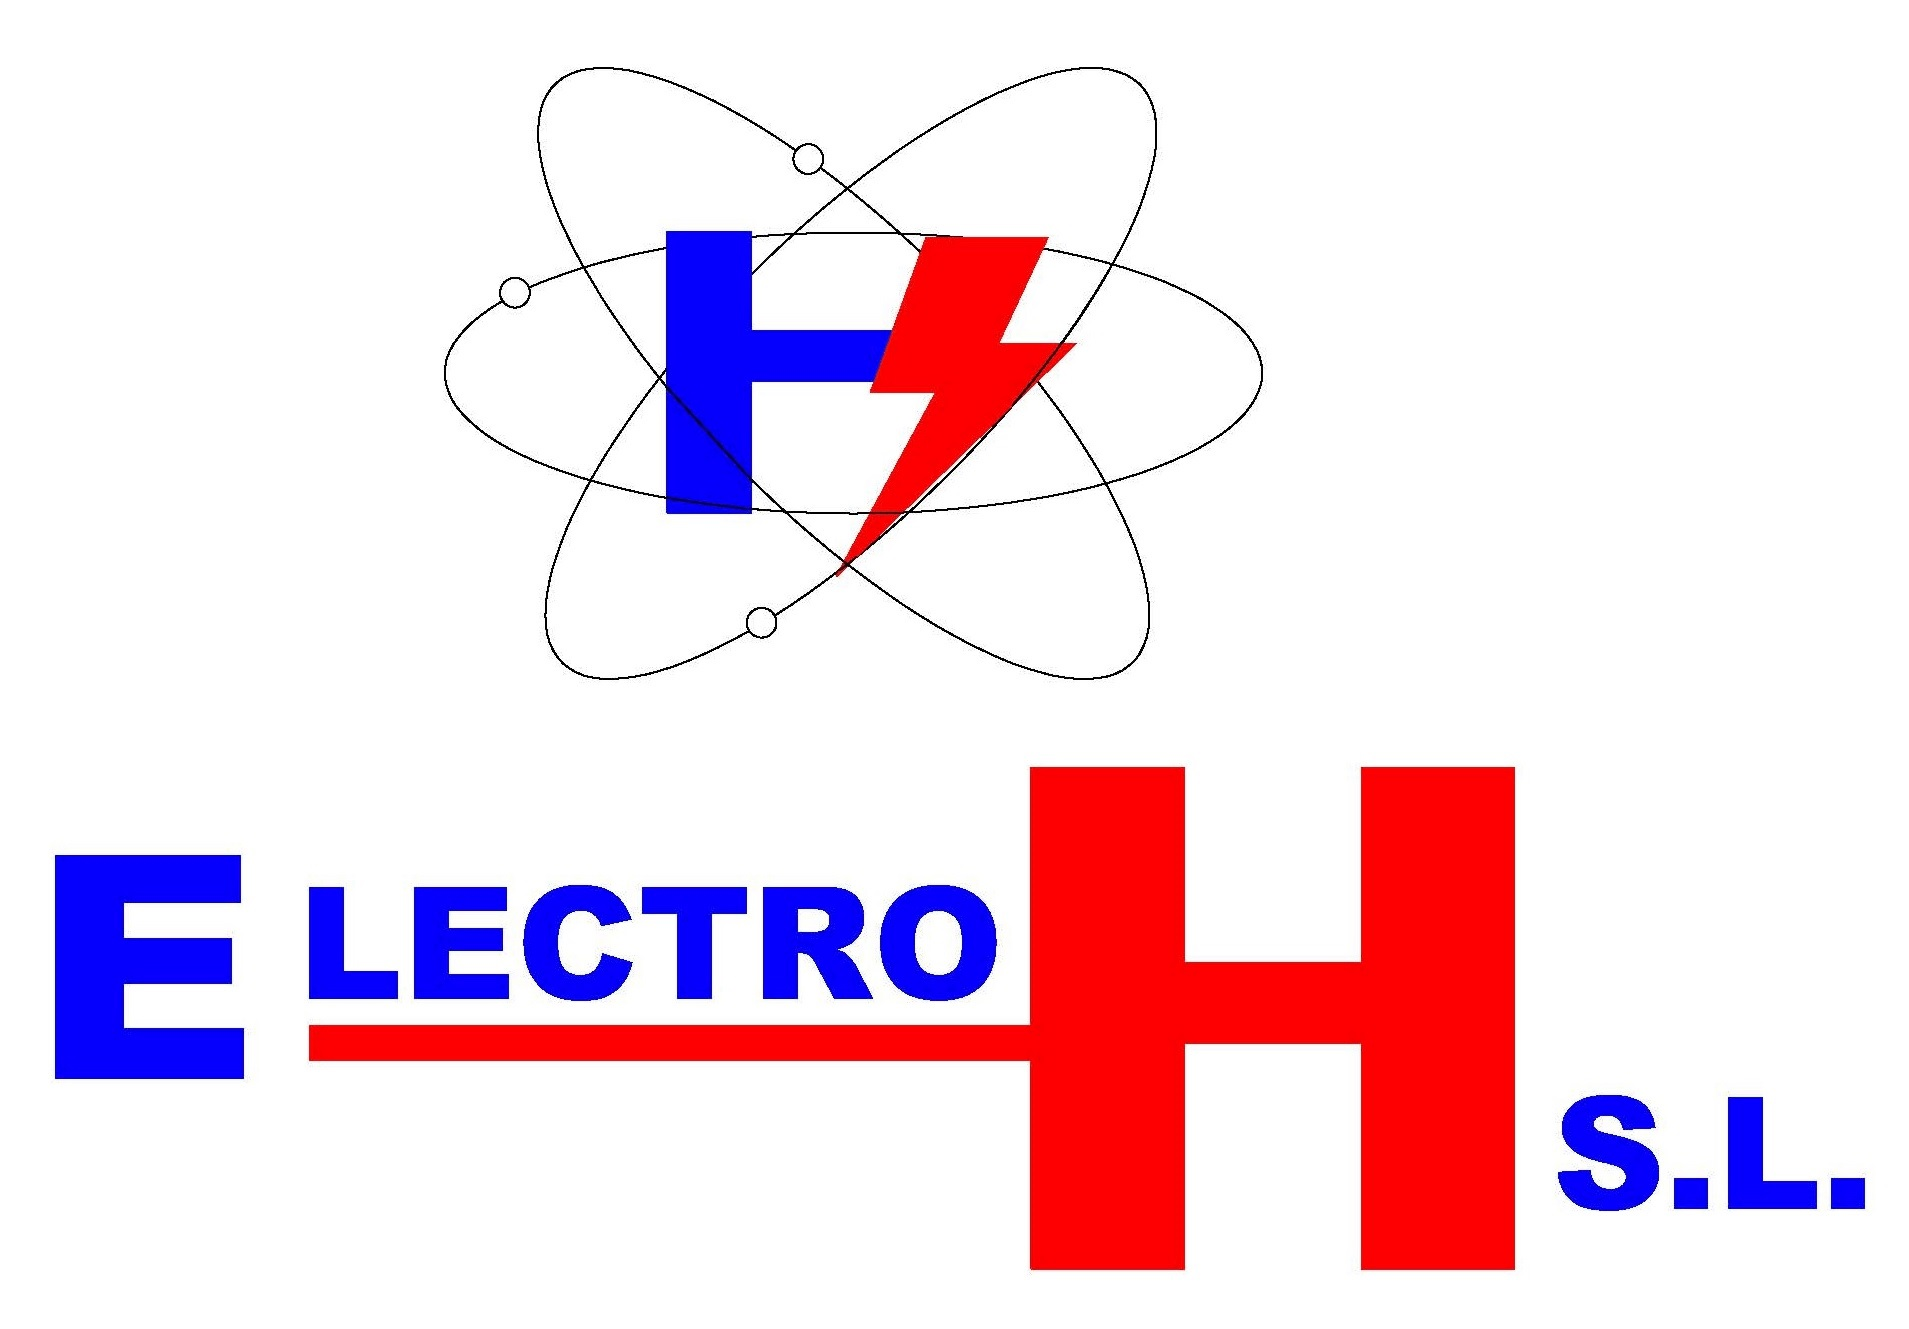 Electro-H, S.l.